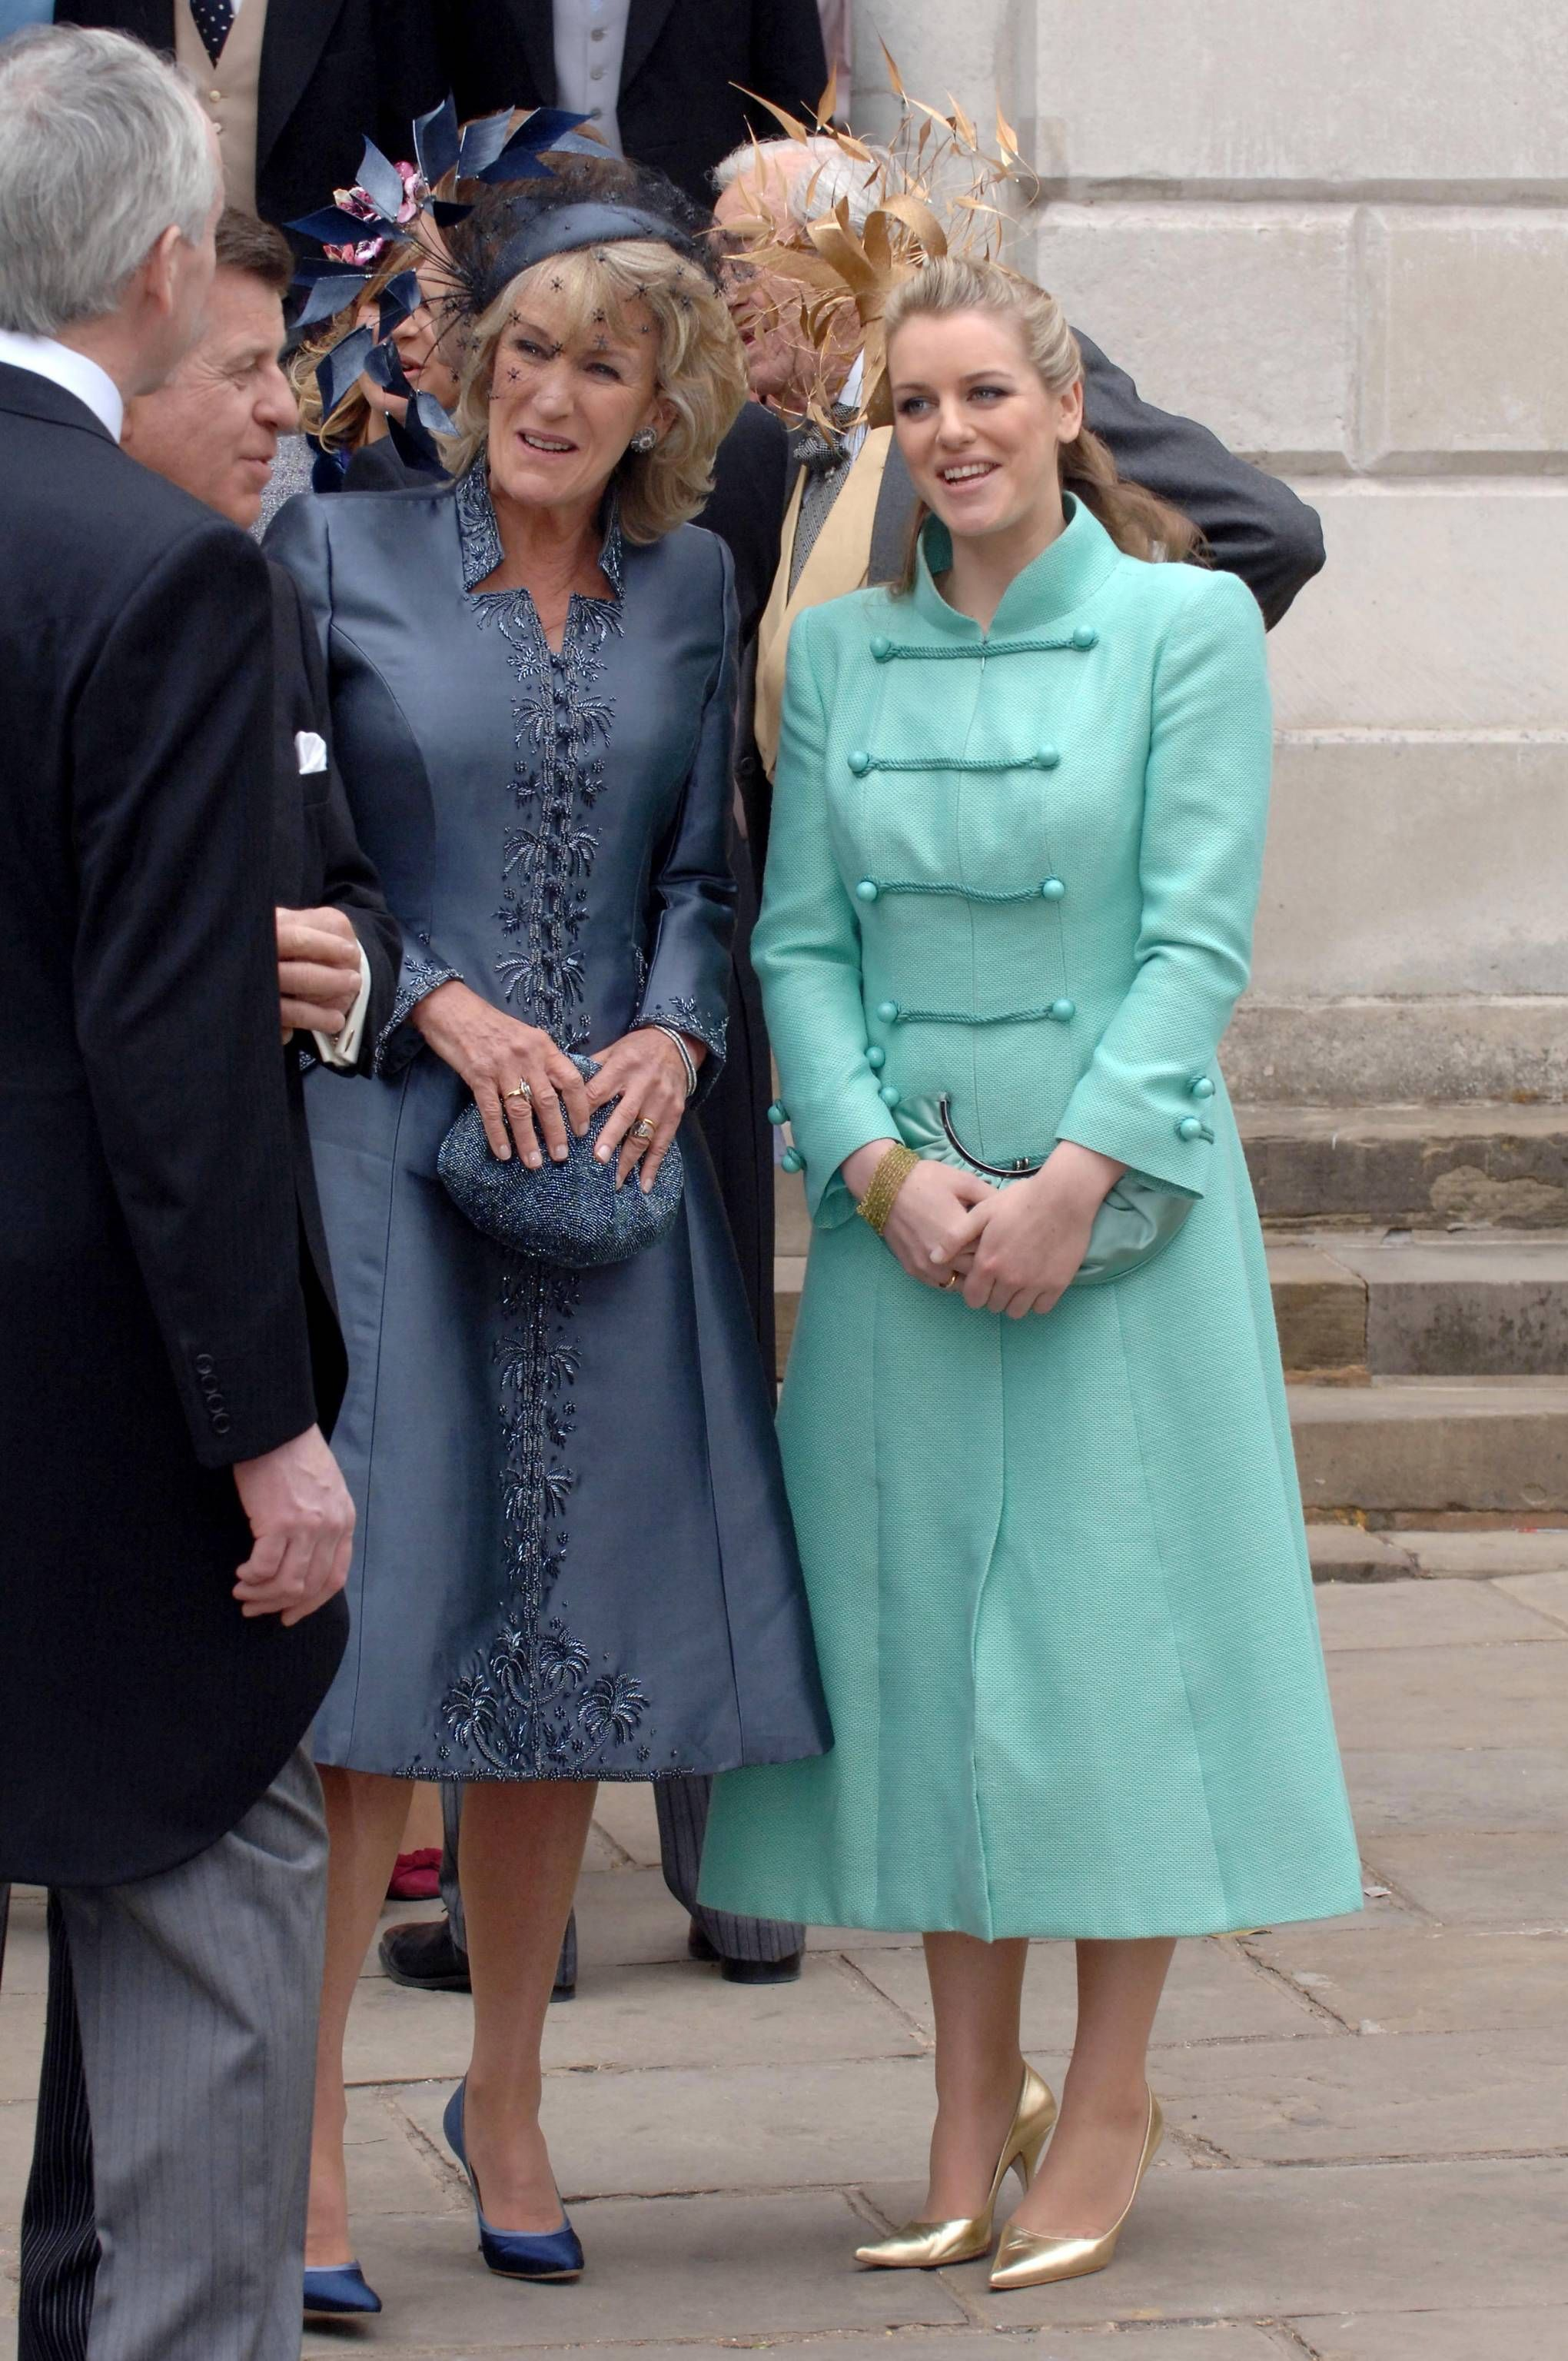 The Best Dressed Royal Wedding Guests of All Time